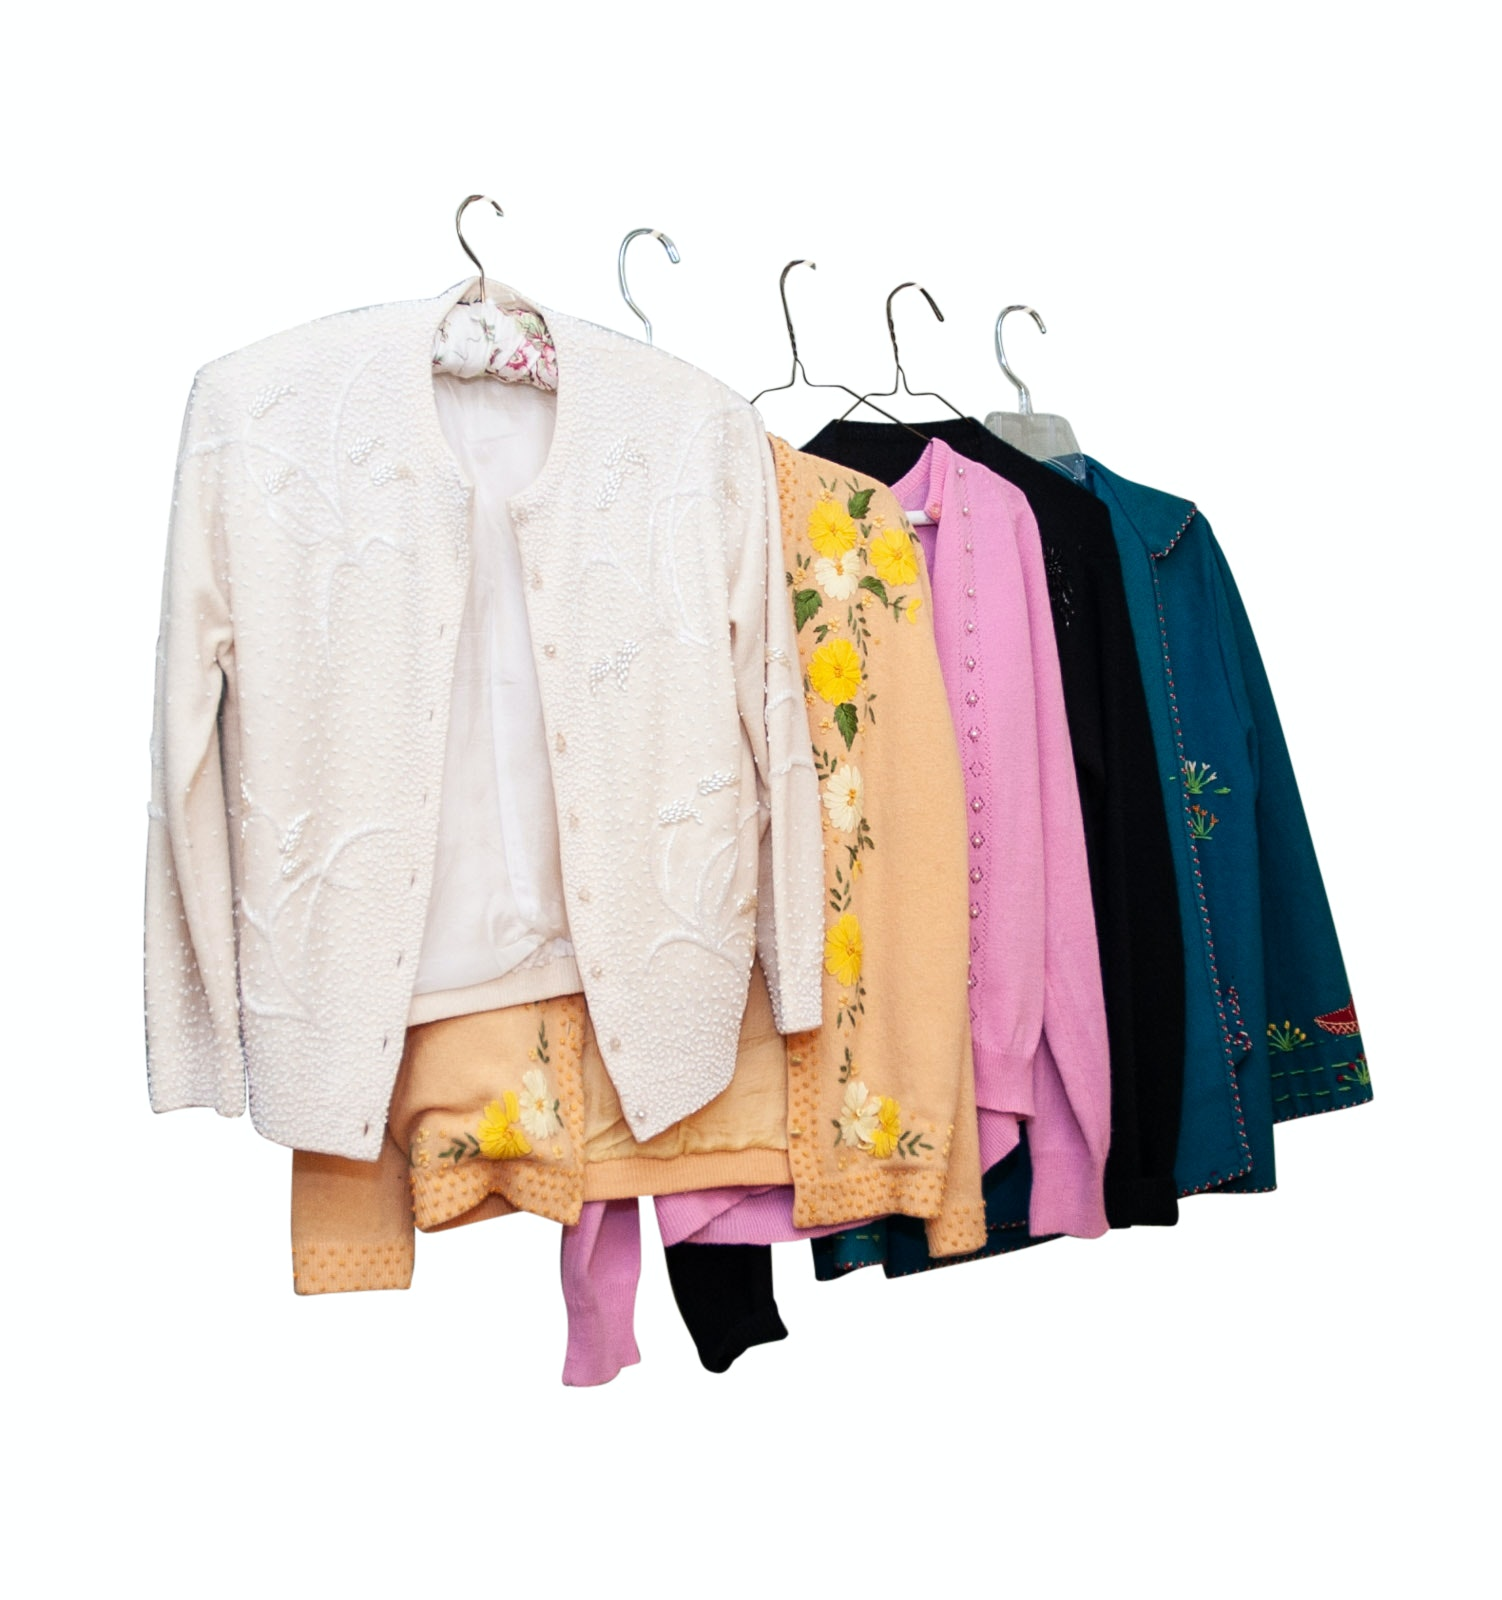 Vintage Beaded and Embroidered Cardigans and Mexican Embroidered Jacket